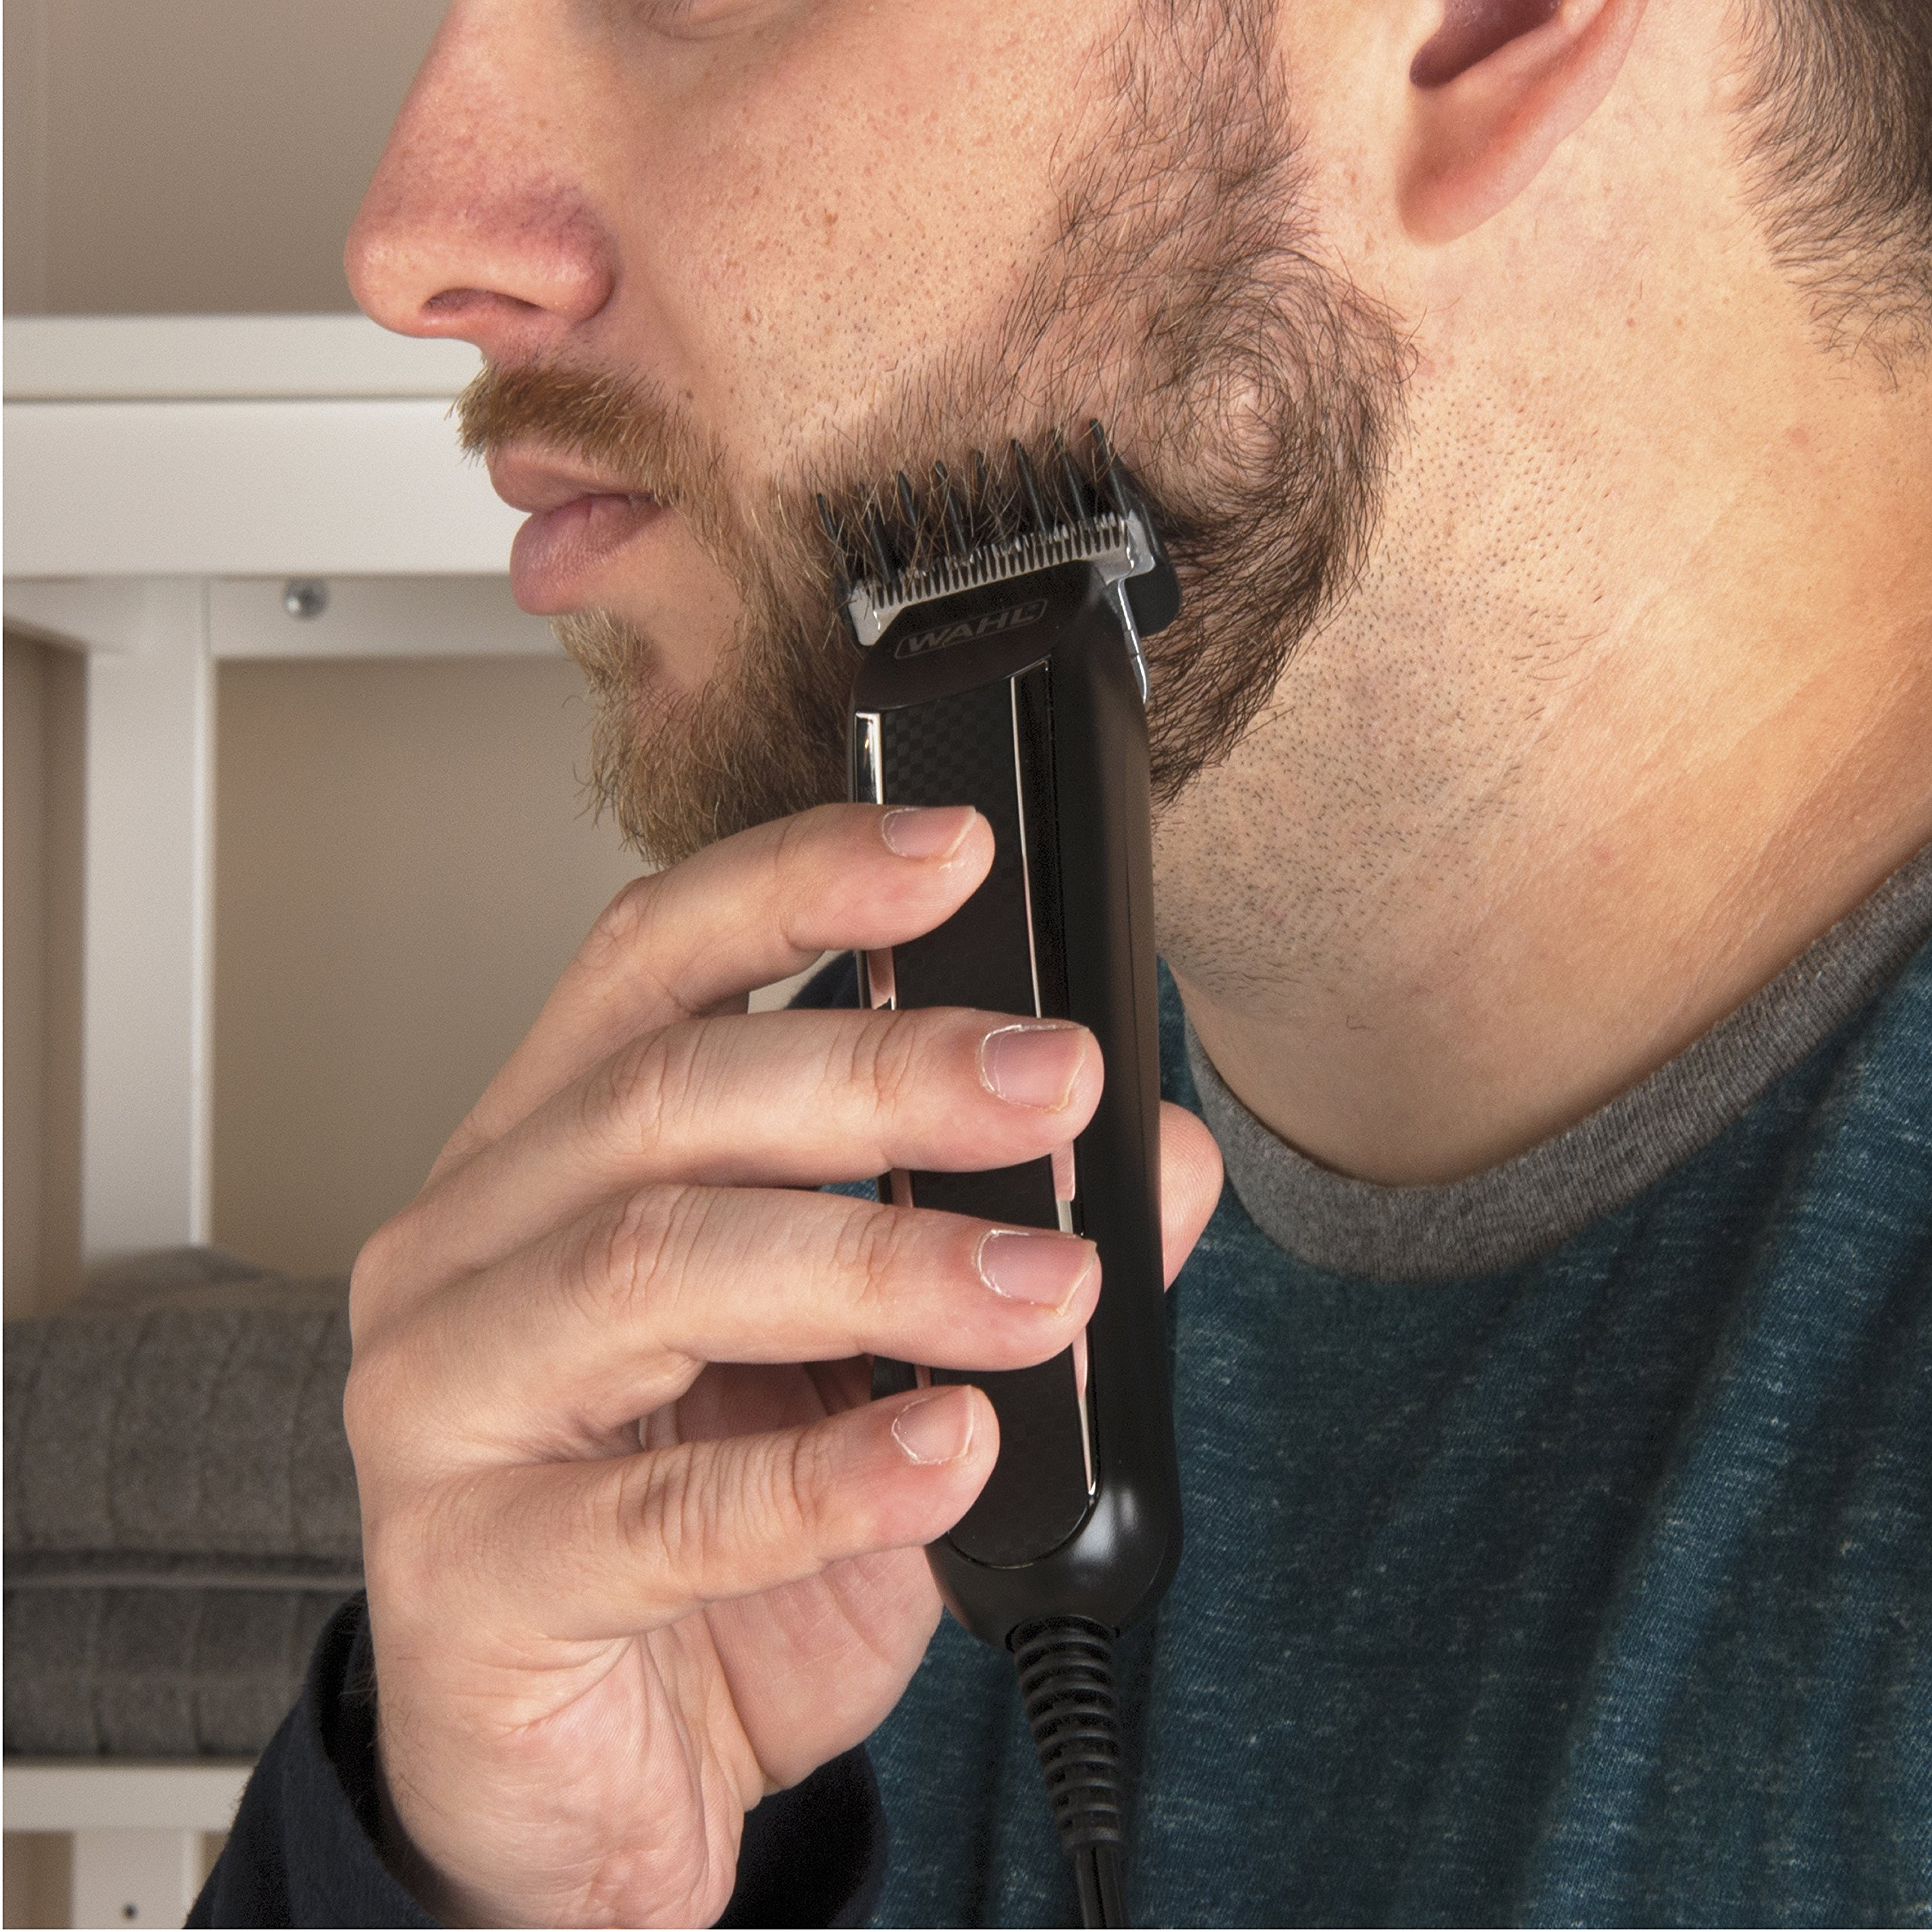 Wahl Clipper PowerPro Corded Beard Trimmers, Hair Clippers and Haircut Trimmers, men's grooming kits for Beard, Mustache, Stubble, Ear, Nose, Body Grooming, by the Brand used by Professionals # 9686 by Wahl (Image #4)